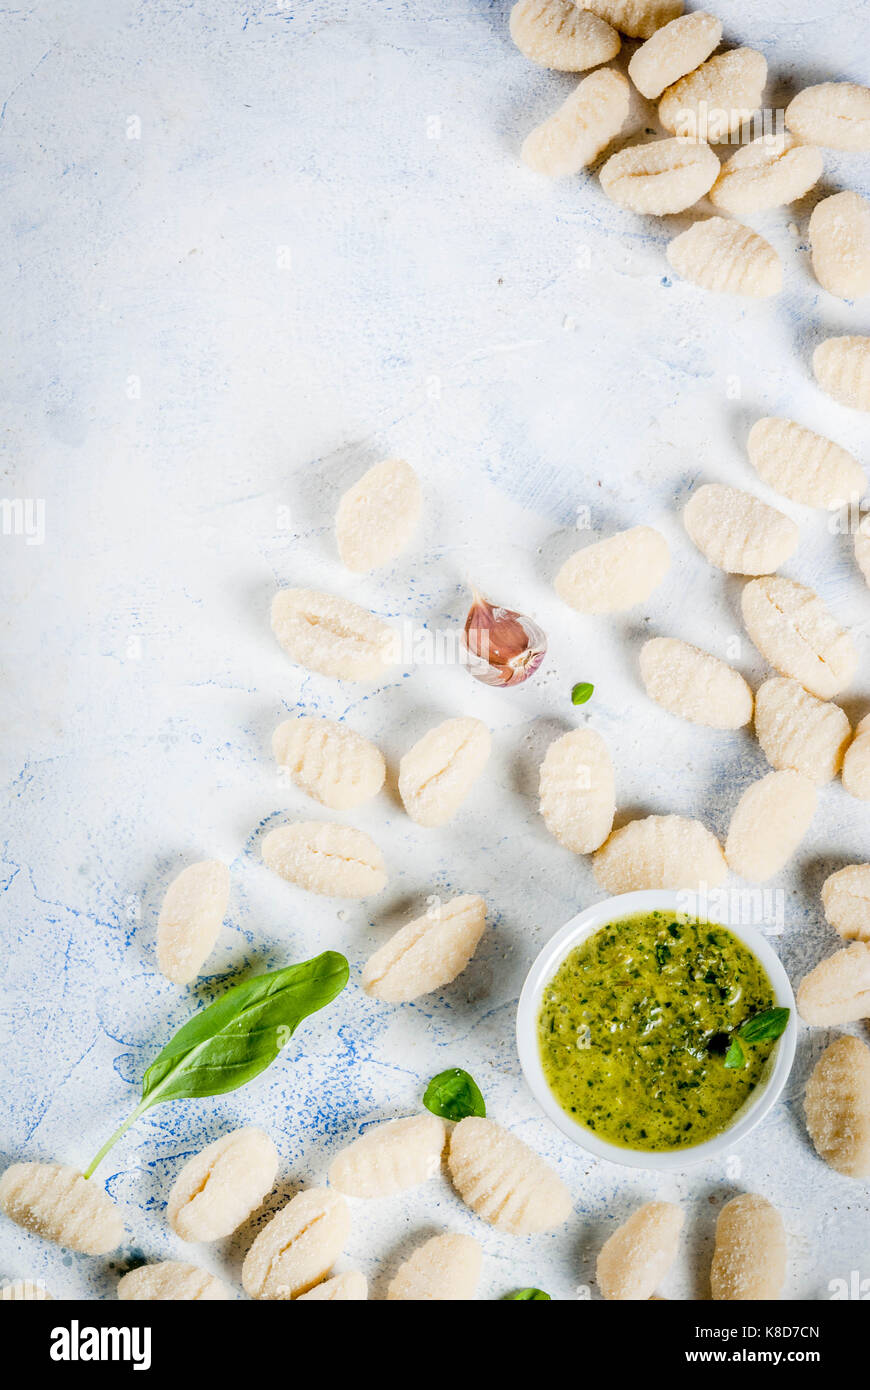 Raw uncooked homemade potato gnocchi with flour, grated parmesan cheese, basil and pesto sauce. On concrete light - Stock Image